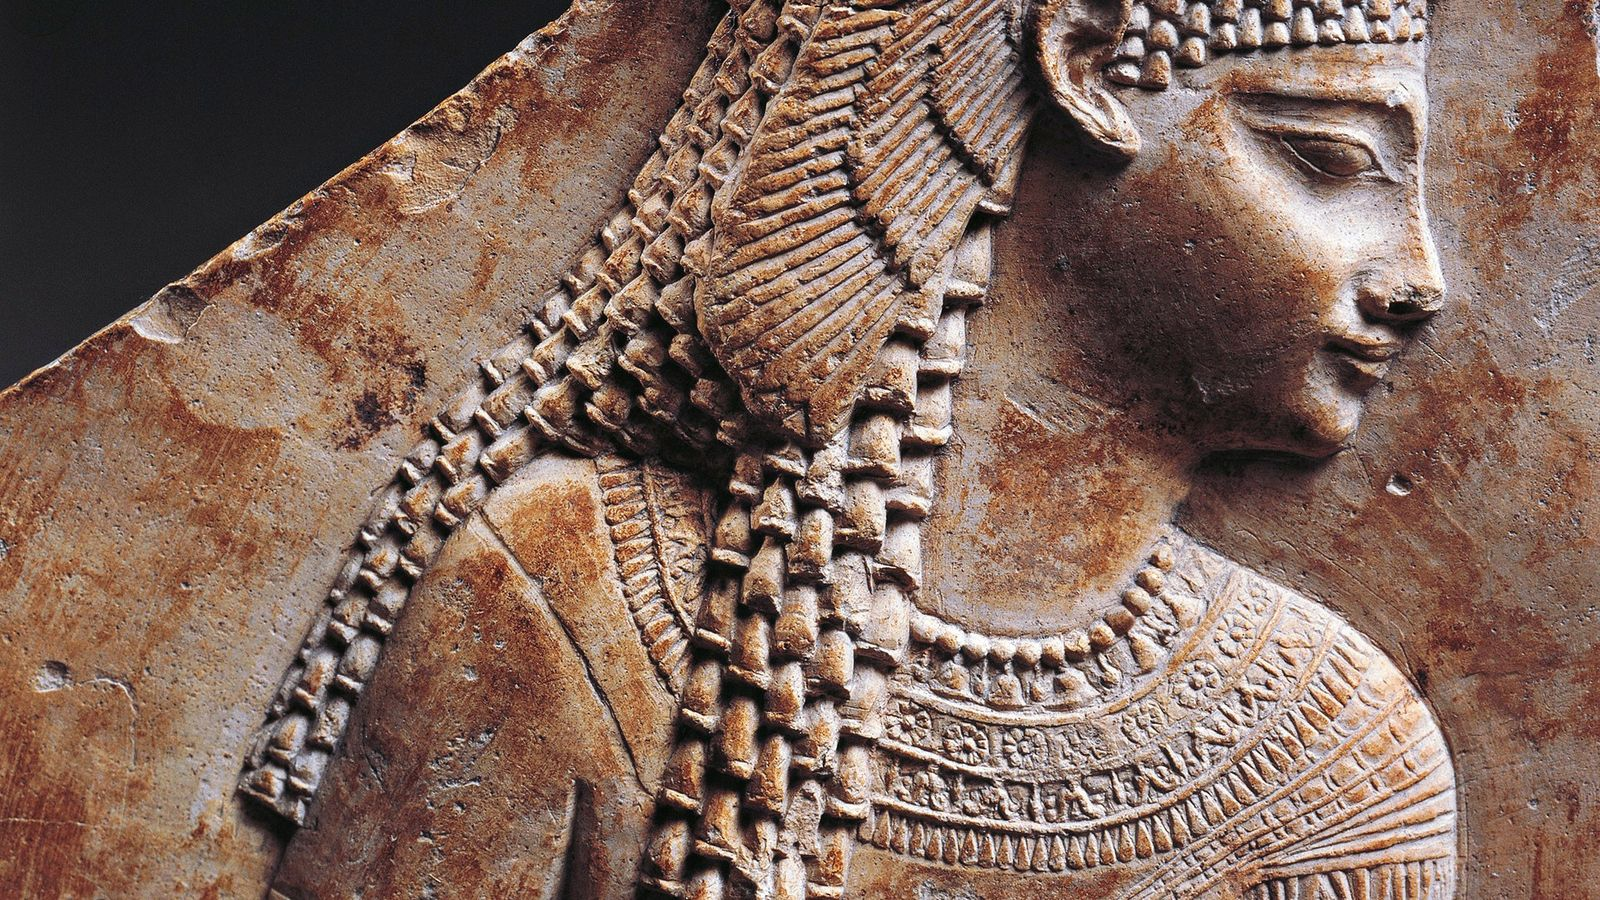 A portrait of Cleopatra emphasizes her Egyptian headdress. Though the Ptolemaic dynasty descended from a Macedonian ...